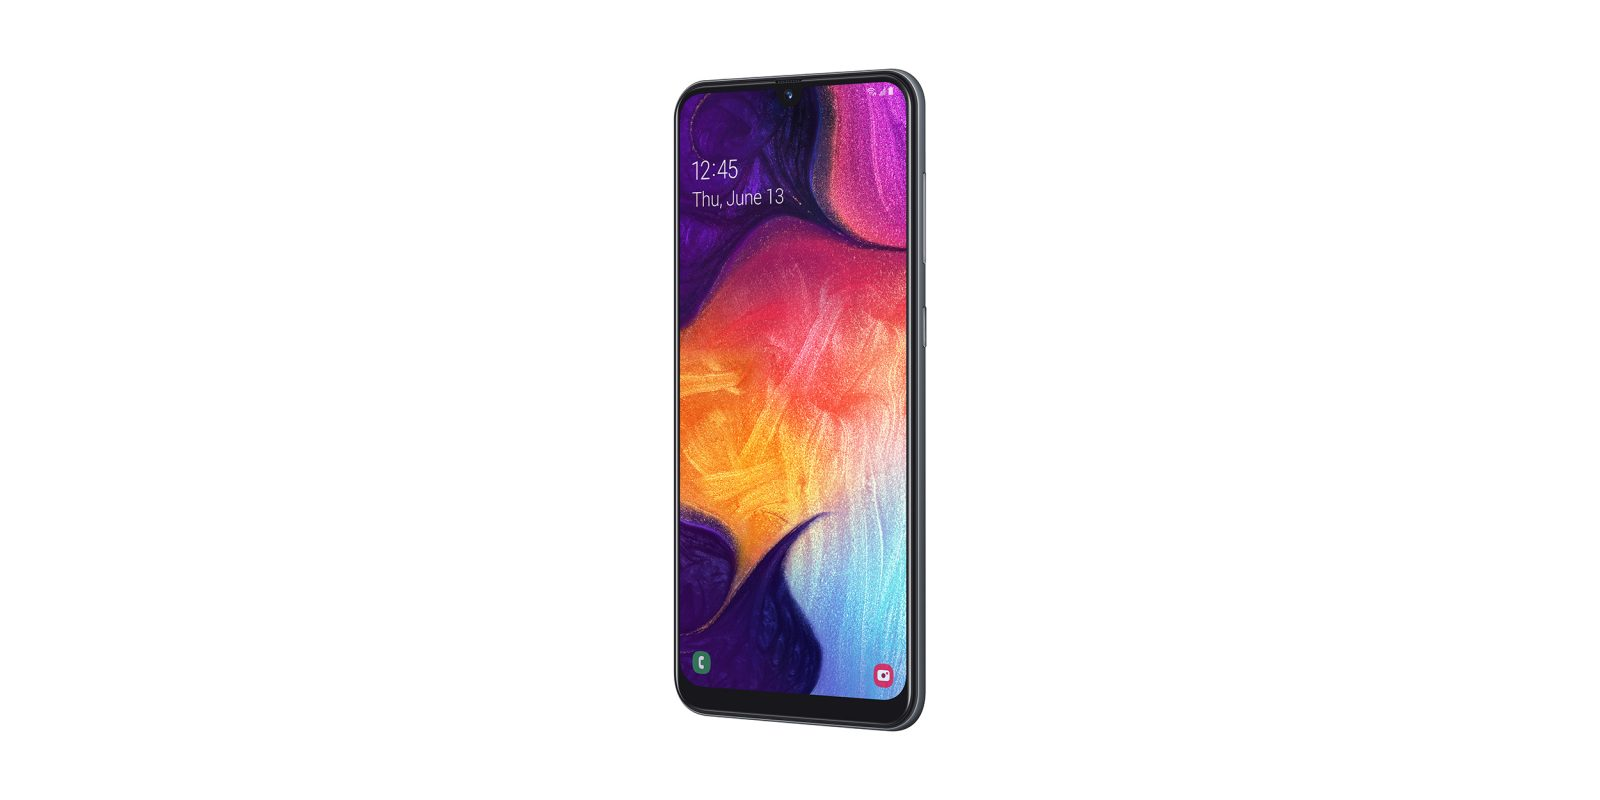 Samsung Galaxy A50 arrives in US for $349 - 9to5Google